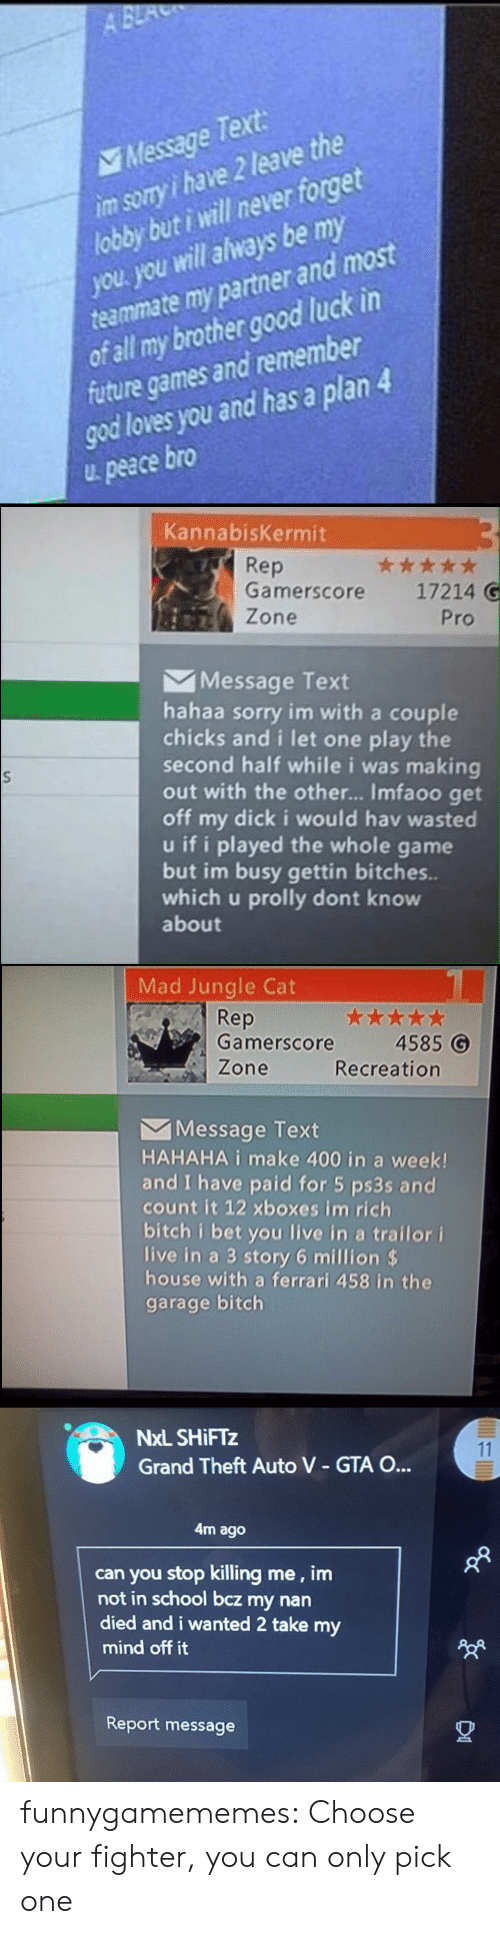 Stop Killing: A BE  Message Text  im sory i have 2 leave the  lobby but i will never forget  you. you will always be my  teammate my partner and most  of all my brother good luck in  future games and remember  god loves you and has a plan 4  peace bro   KannabisKermit  Rep  Gamerscore  ***  17214 G  Zone  Pro  Message Text  hahaa sorry im with a couple  chicks and i let one play the  second half while i was making  out with the othe... Imfaoo get  off my dick i would hav wasted  u if i played the whole game  but im busy gettin bitches..  which u prolly dont know  about   Mad Jungle Cat  Rep  Gamerscore  4585 G  Zone  Recreation  Message Text  HAHAHA i make 400 in a week!  and I have paid for 5 ps3s and  count it 12 xboxes im rich  bitch i bet you live in a trailor i  live in a 3 story 6 million $  house with a ferrari 458 in the  garage bitch   NxL SHIFTZ  11  Grand Theft Auto V - GTA O...  4m ago  can you stop killing me, im  not in school bcz my nan  died and i wanted 2 take my  mind off it  Report message funnygamememes: Choose your fighter, you can only pick one